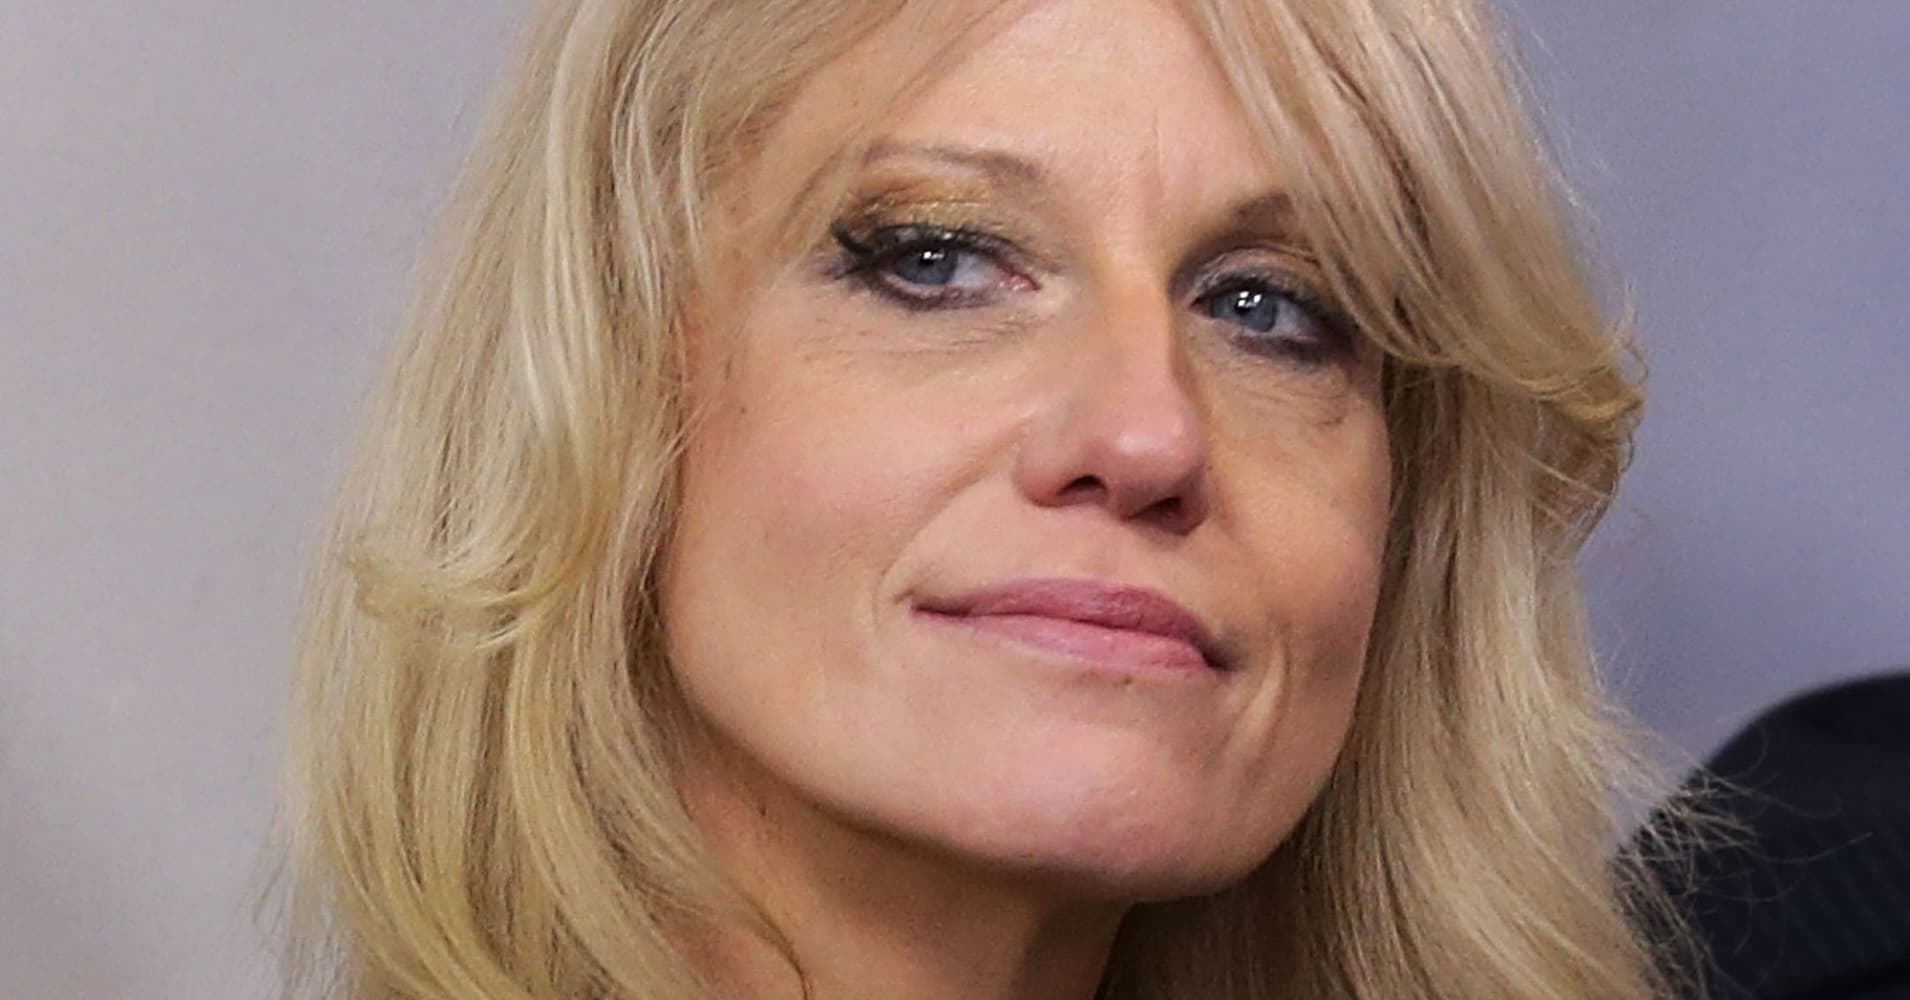 cnbc.com - Ester Bloom - Kellyanne Conway: Those on Medicaid who will lose health insurance can always get jobs